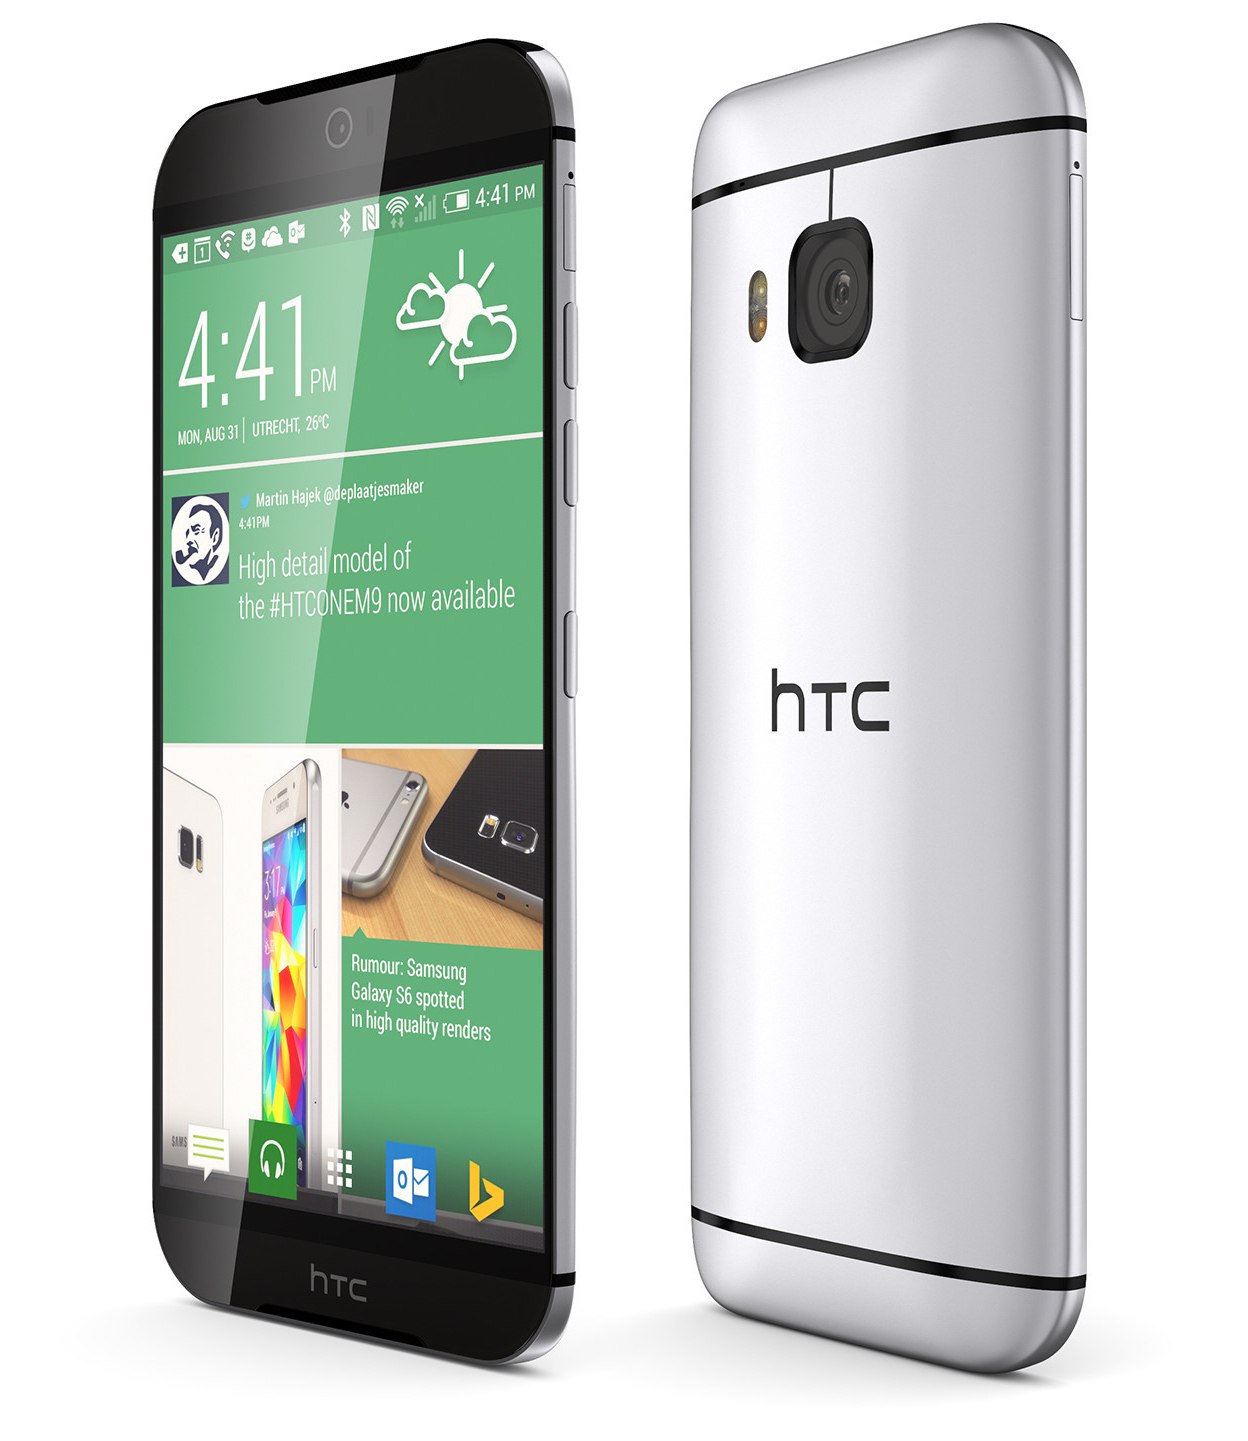 HTC-One-M9-2015-Hajek-00